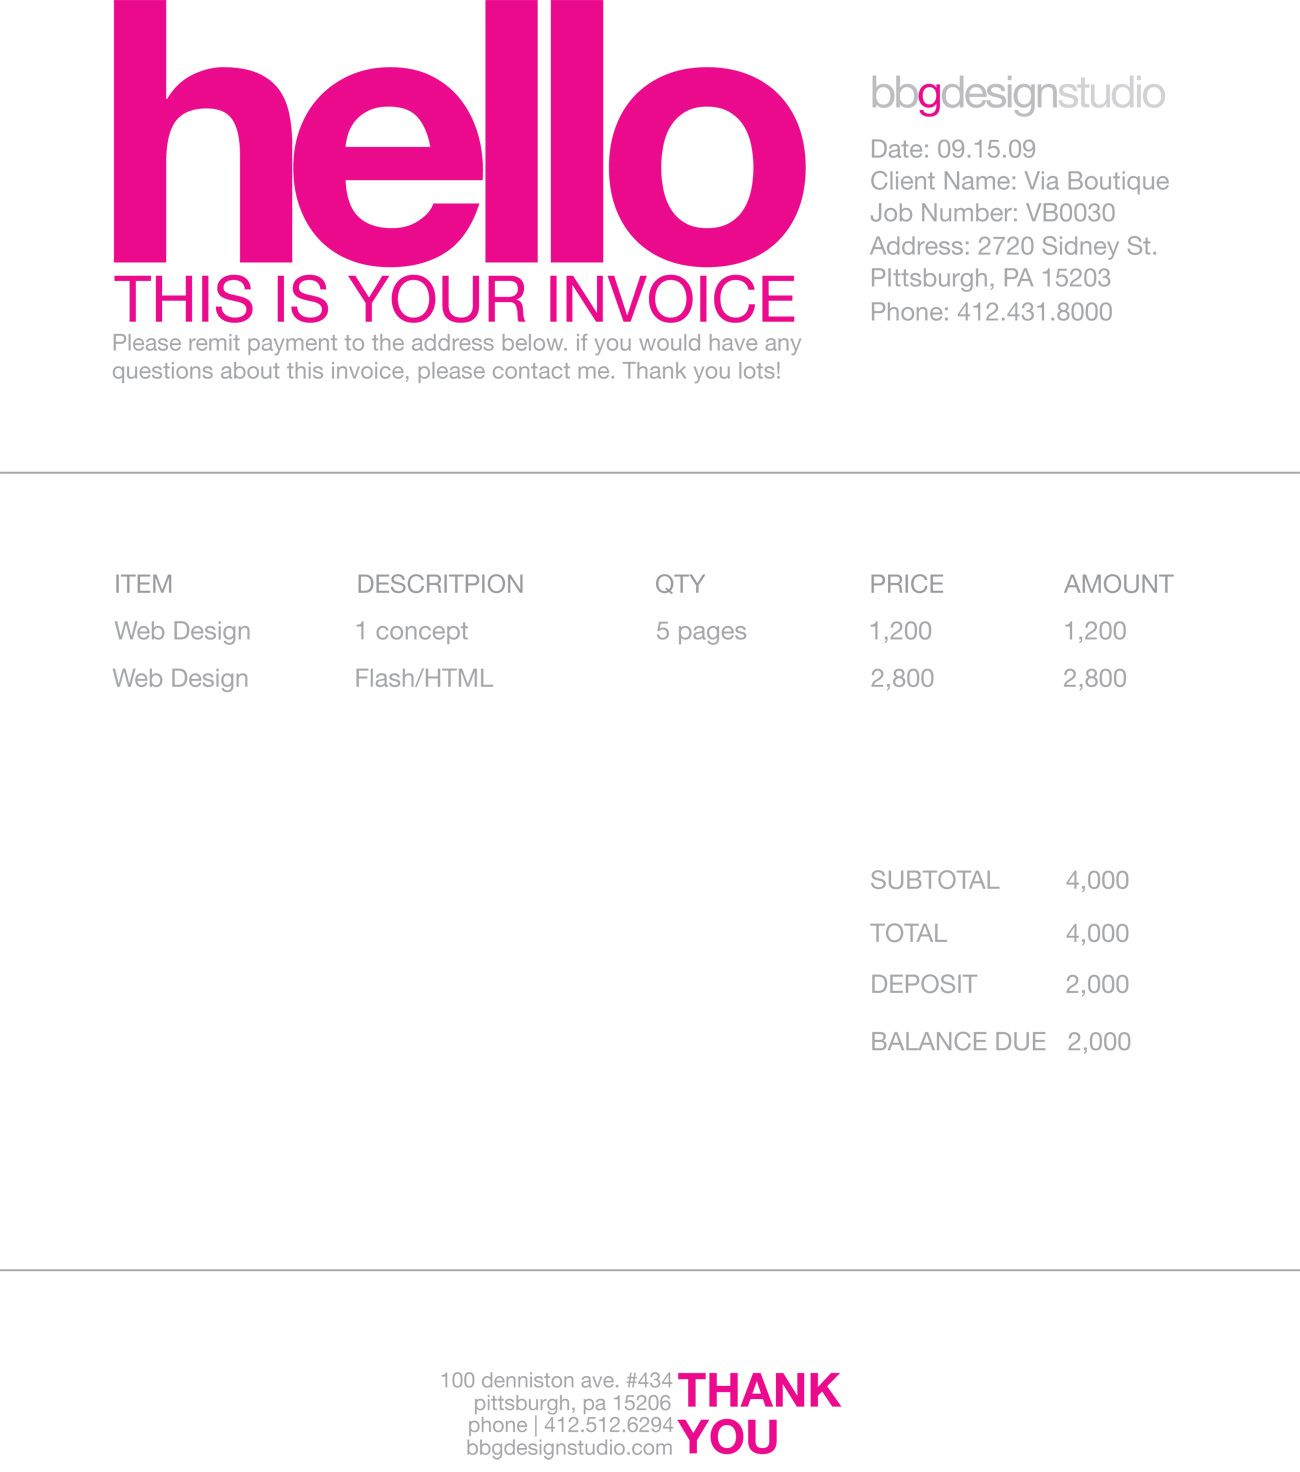 Howcanigettallerus  Splendid  Images About Invoice Design On Pinterest With Luxury Invoice Dispute Besides Paying An Invoice Furthermore Invoice Prices For Cars With Astonishing Real Invoice Price New Cars Also Invoicing And Billing In Addition Create Custom Invoices And Bmw X Invoice Price As Well As What Is A Car Invoice Additionally Customized Invoice Books From Pinterestcom With Howcanigettallerus  Luxury  Images About Invoice Design On Pinterest With Astonishing Invoice Dispute Besides Paying An Invoice Furthermore Invoice Prices For Cars And Splendid Real Invoice Price New Cars Also Invoicing And Billing In Addition Create Custom Invoices From Pinterestcom